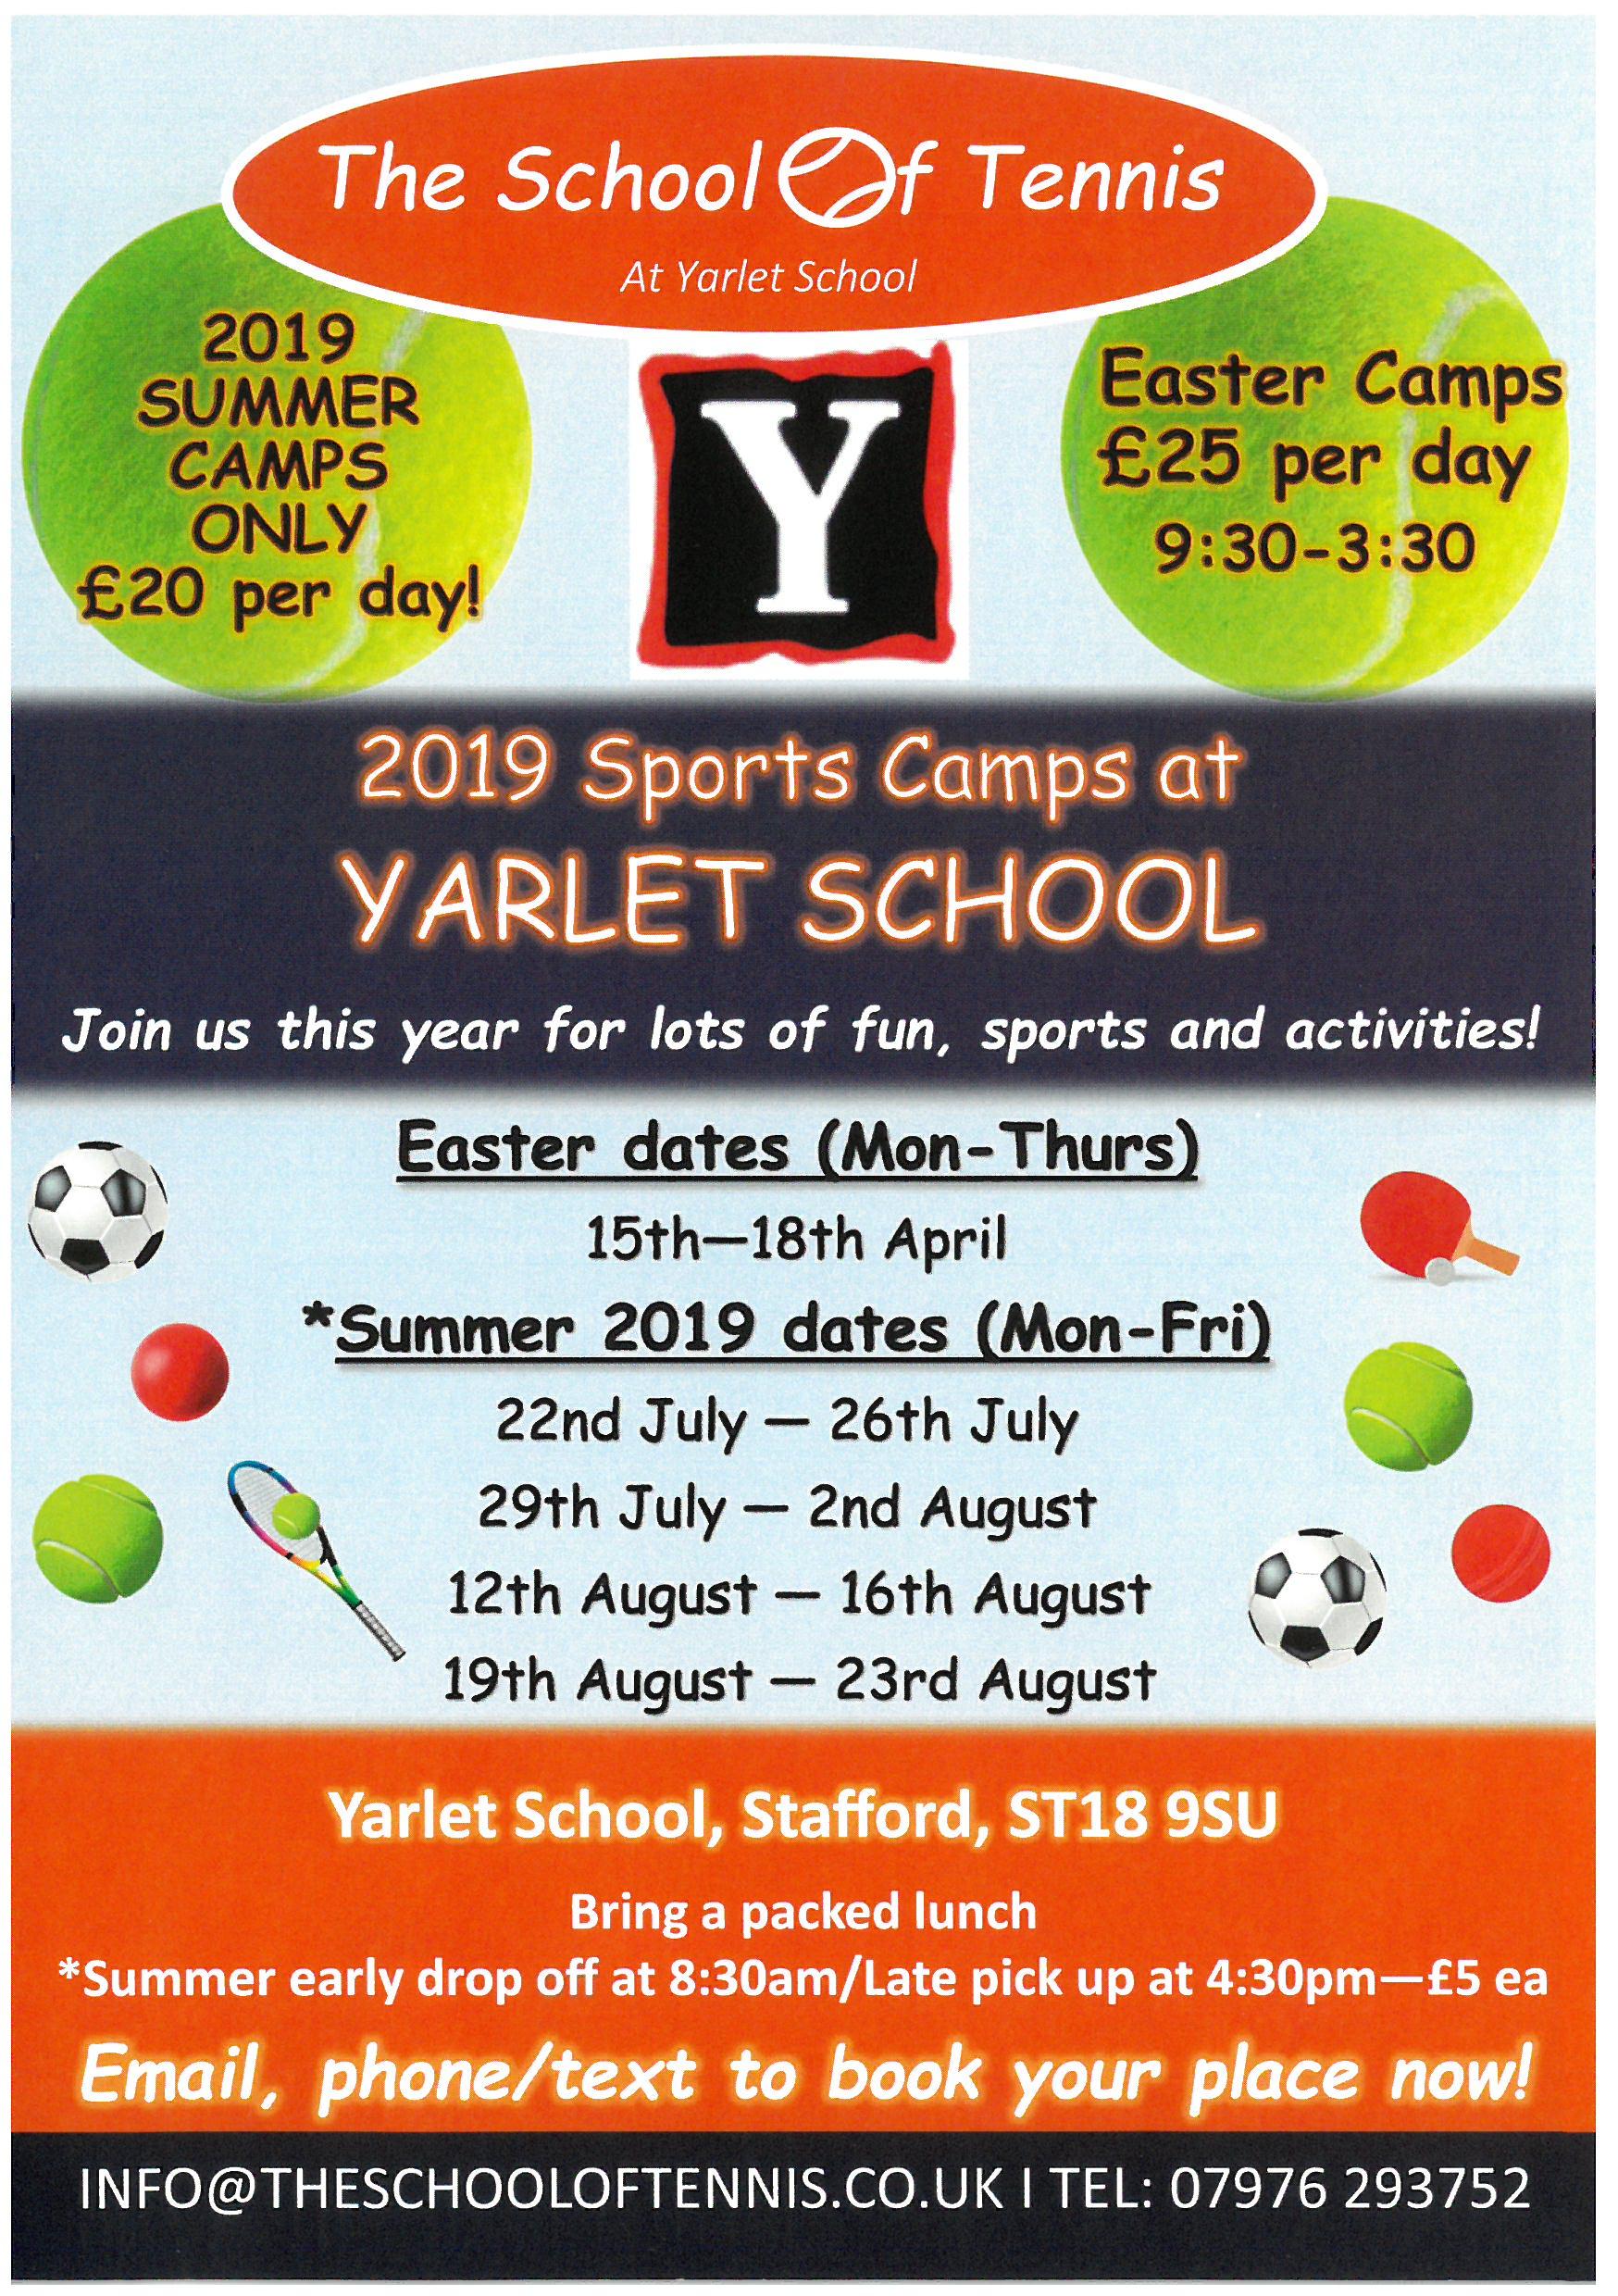 Easter and Summer Sports Camps